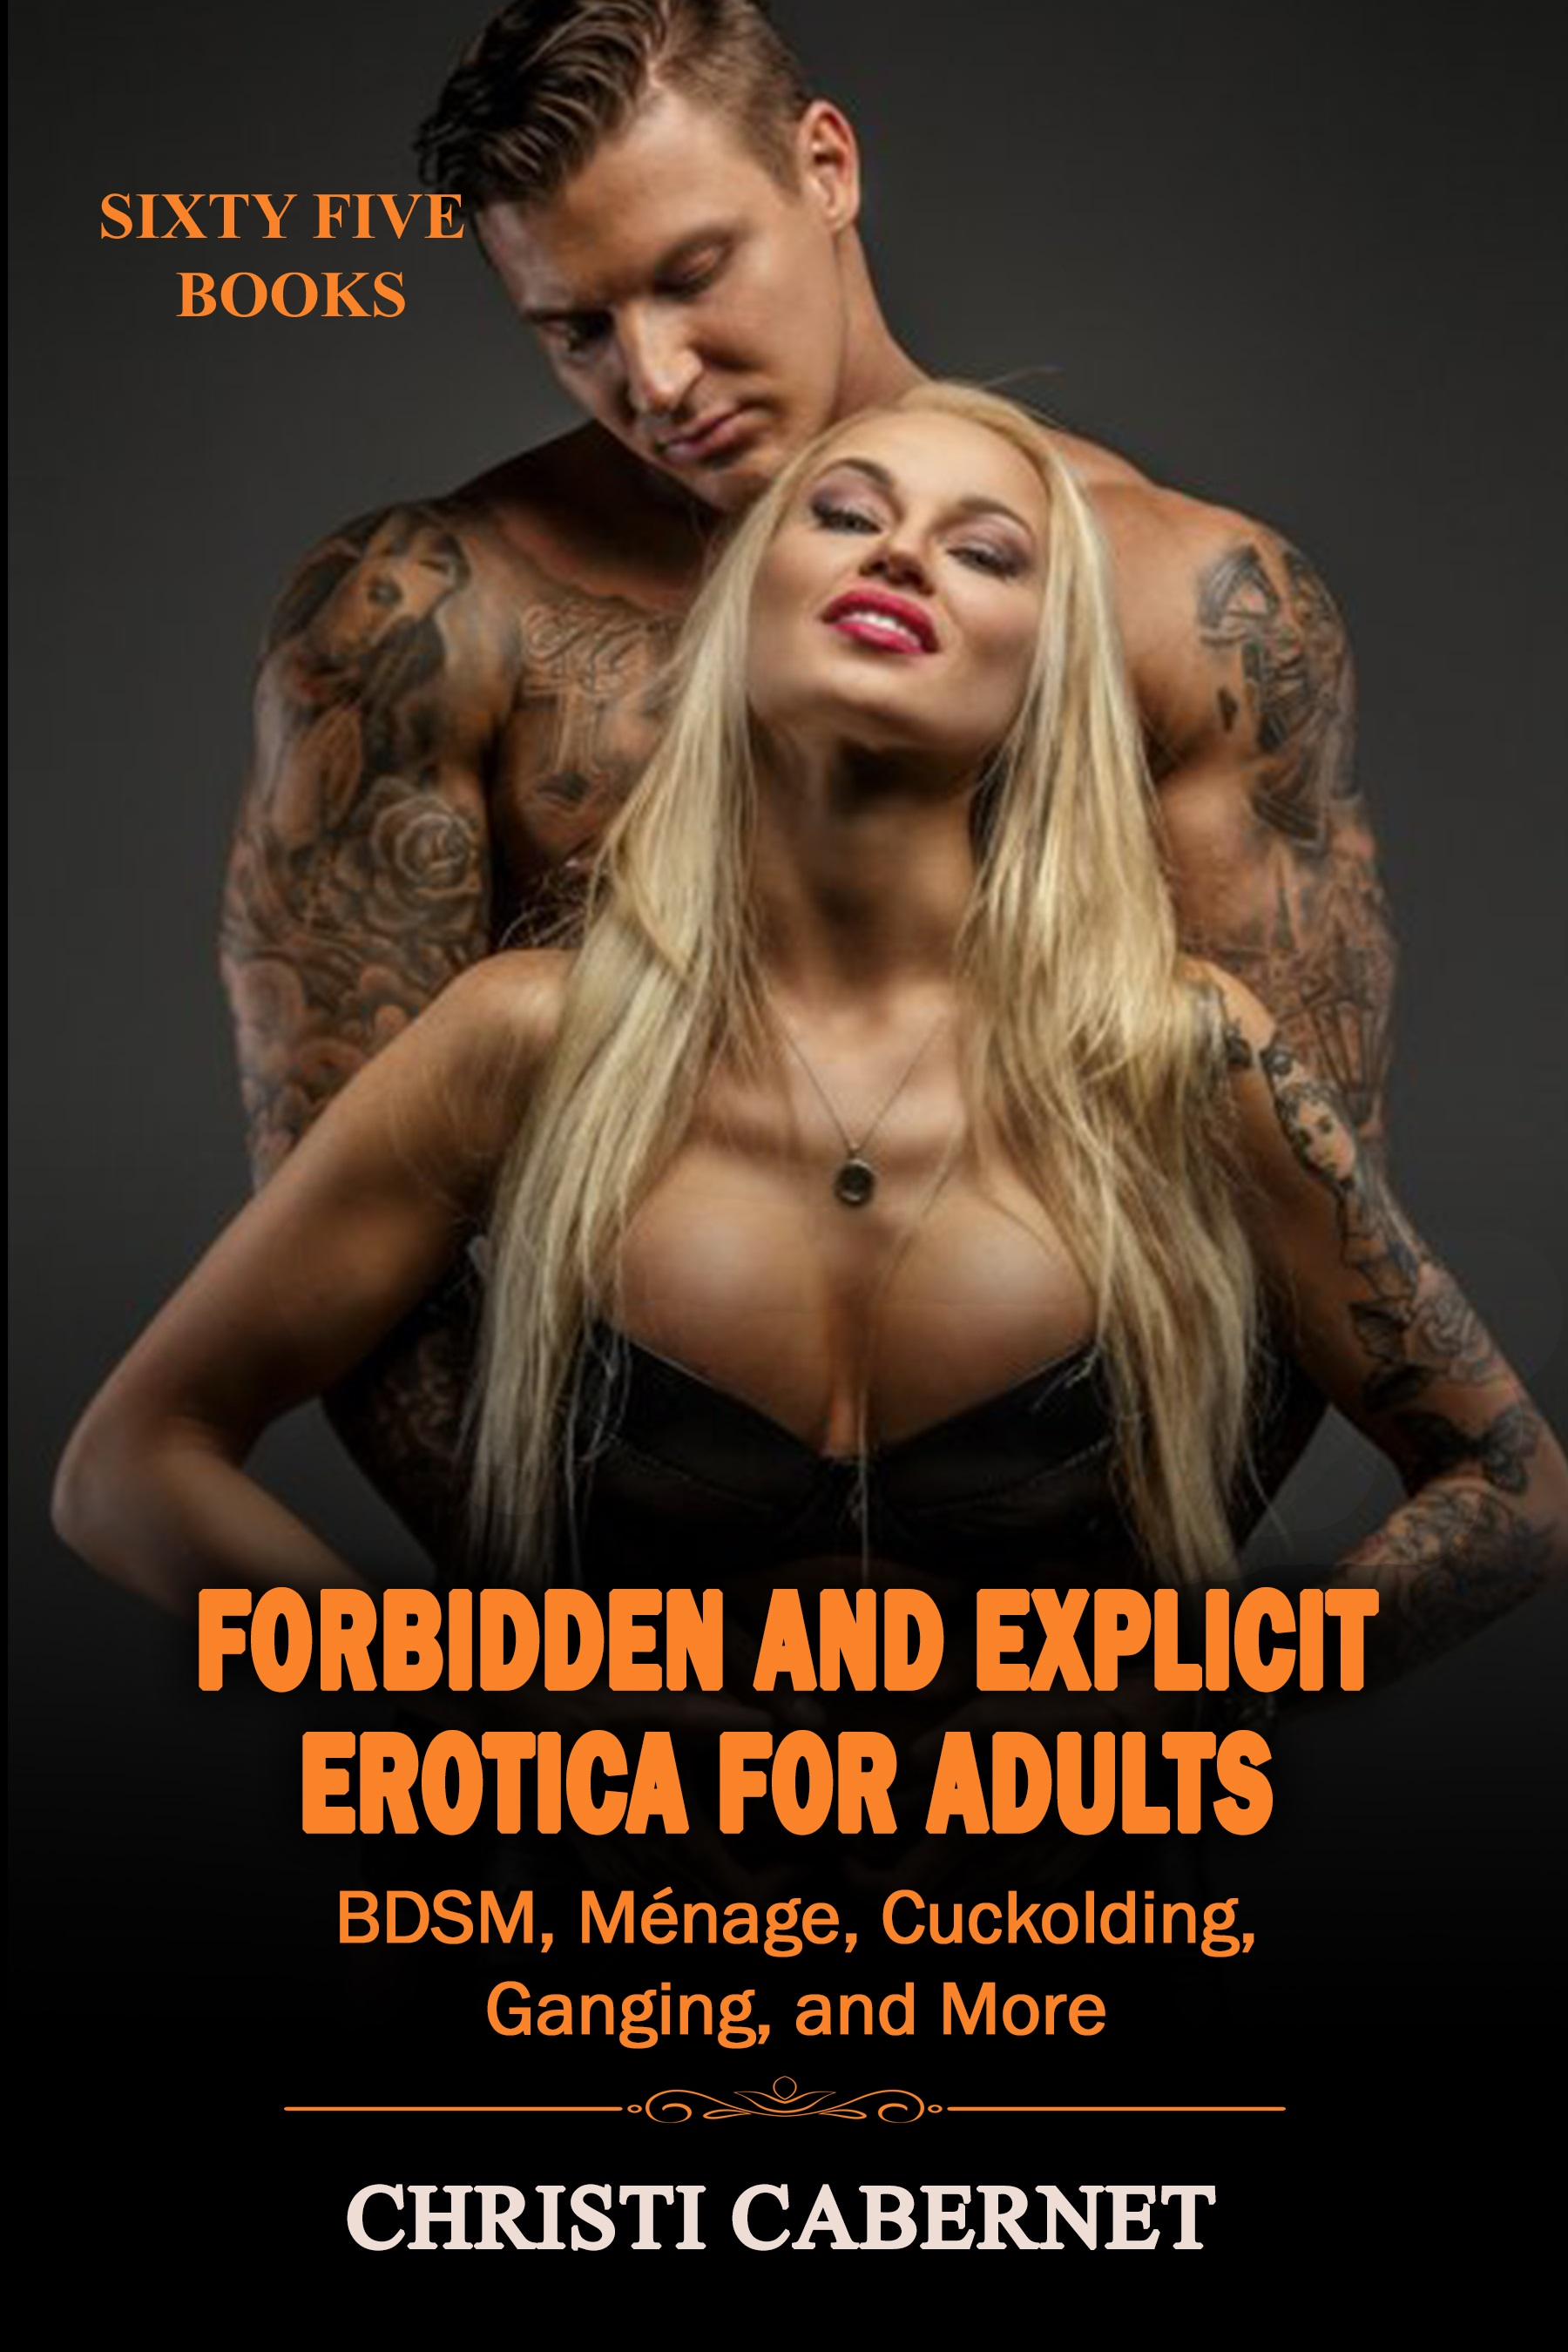 Sixty Five Books: Forbidden and Explicit Erotica for Adults BDSM, Ménage, Cuckolding, Ganging, and More